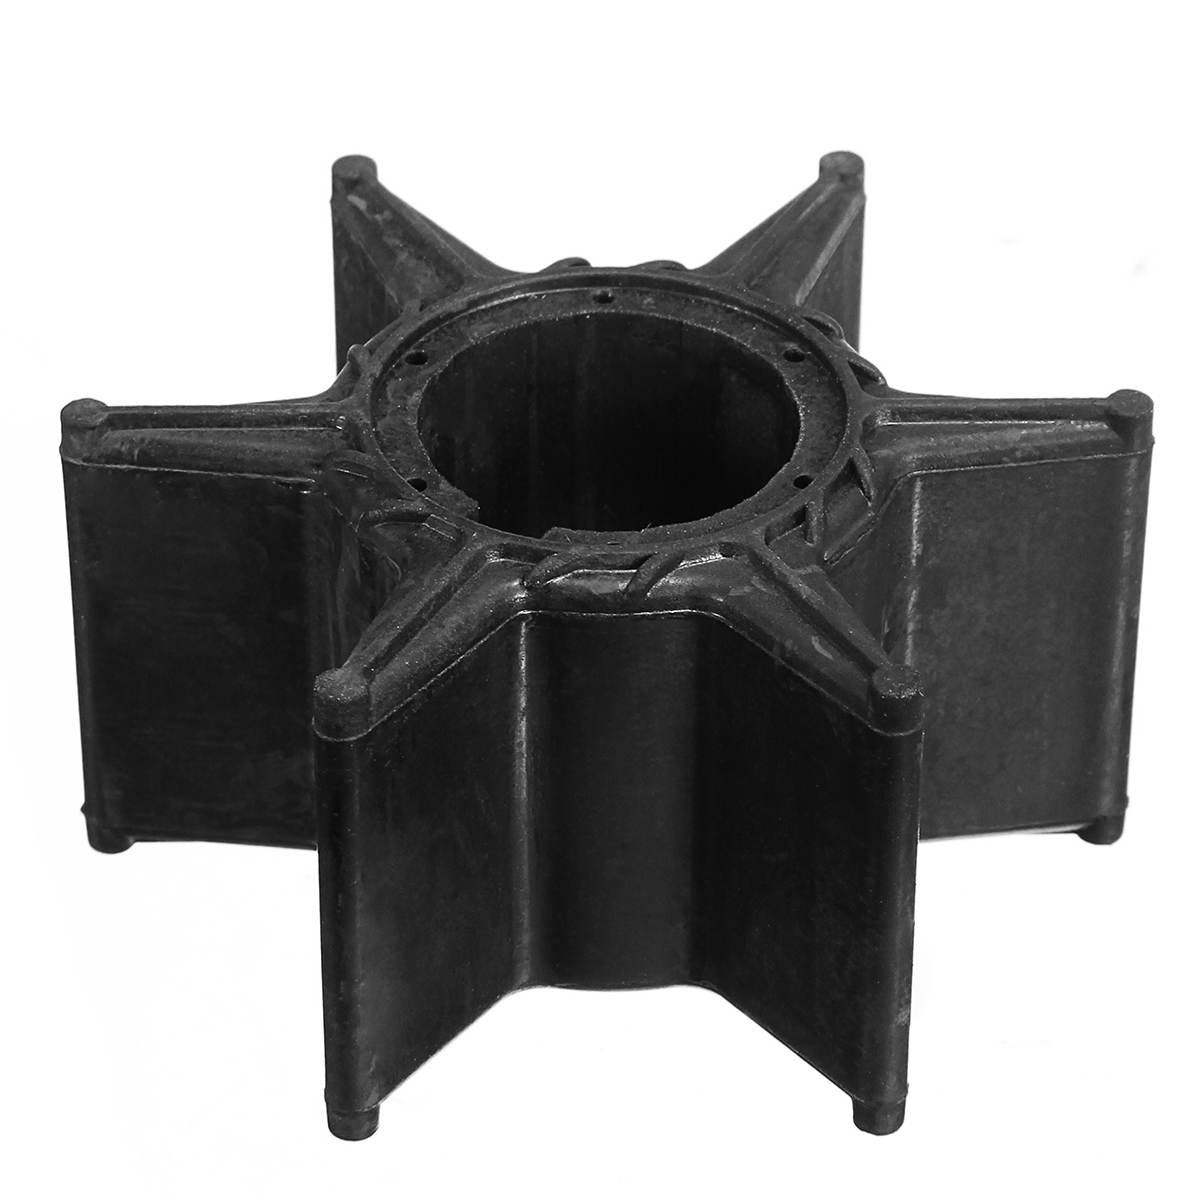 Water Pump Impeller For Yamaha 70HP 75HP 85HP 90HP Outboard 688-44352-03 18-3070 Black Rubber 6 Blades Boat Parts & Accessories